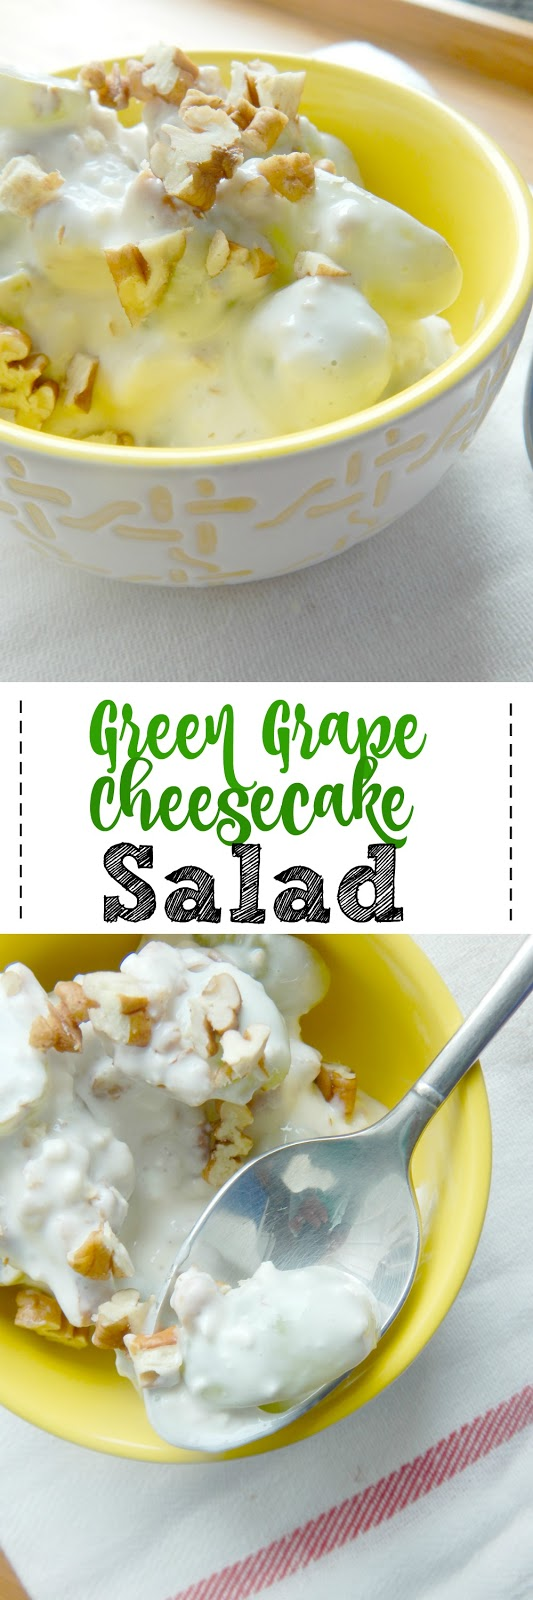 Green Grape Cheesecake Salad...a fruit salad that tastes like dessert!  Sweet grapes, creamy filling and crunchy pecans! (sweetandsavoryfood.com)